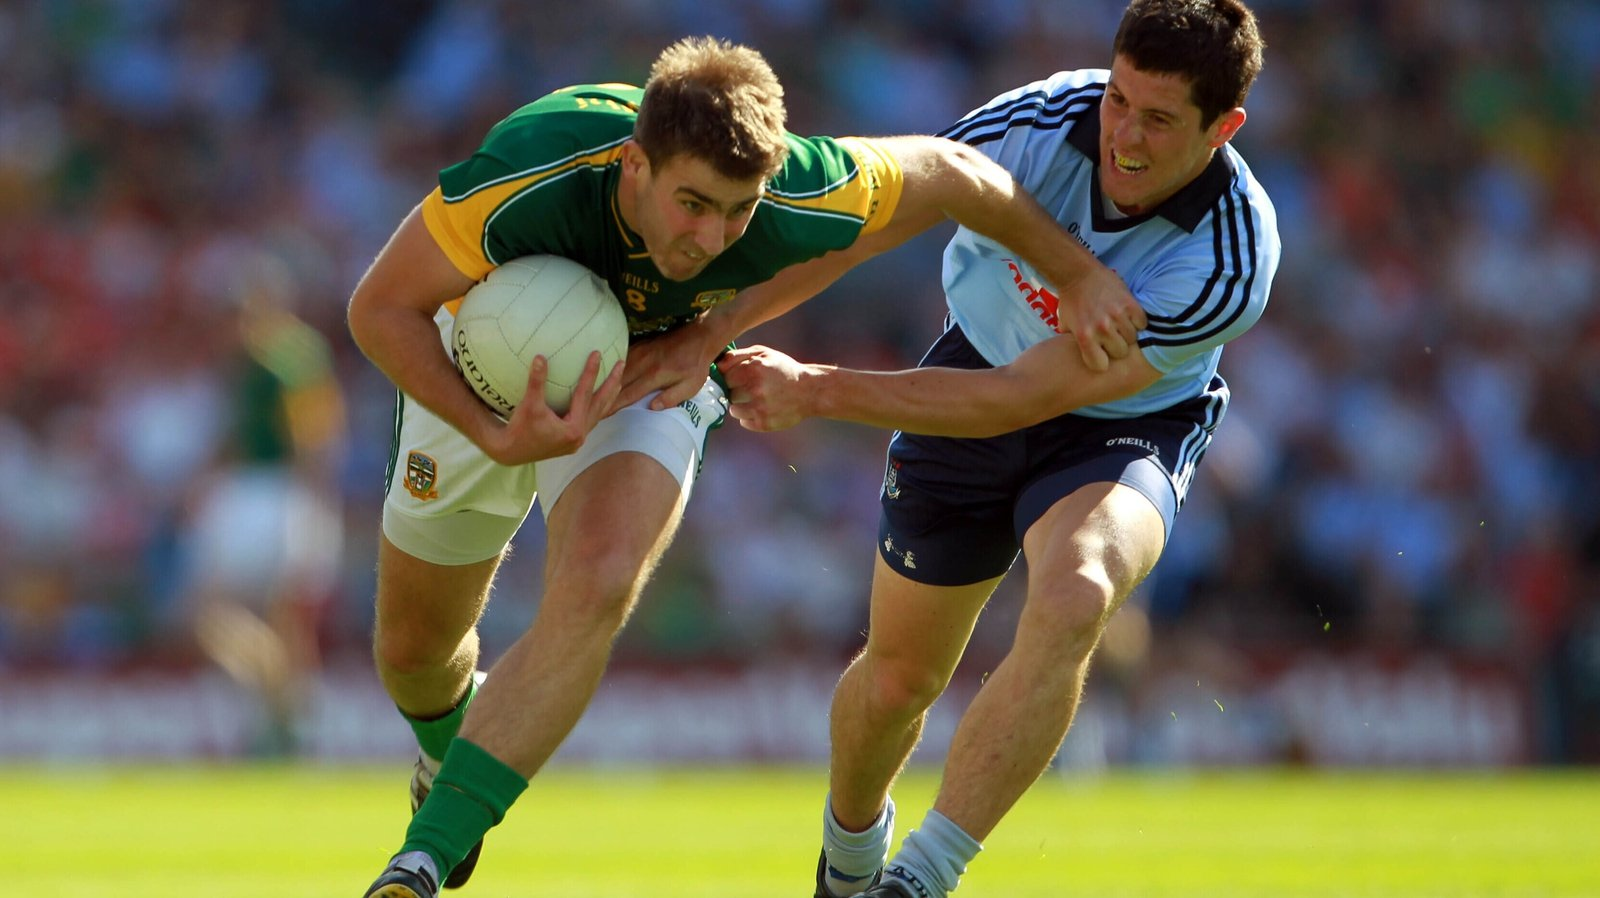 Image - Meath's Brian Farrell gets away from Dublin defender Rory O'Carroll